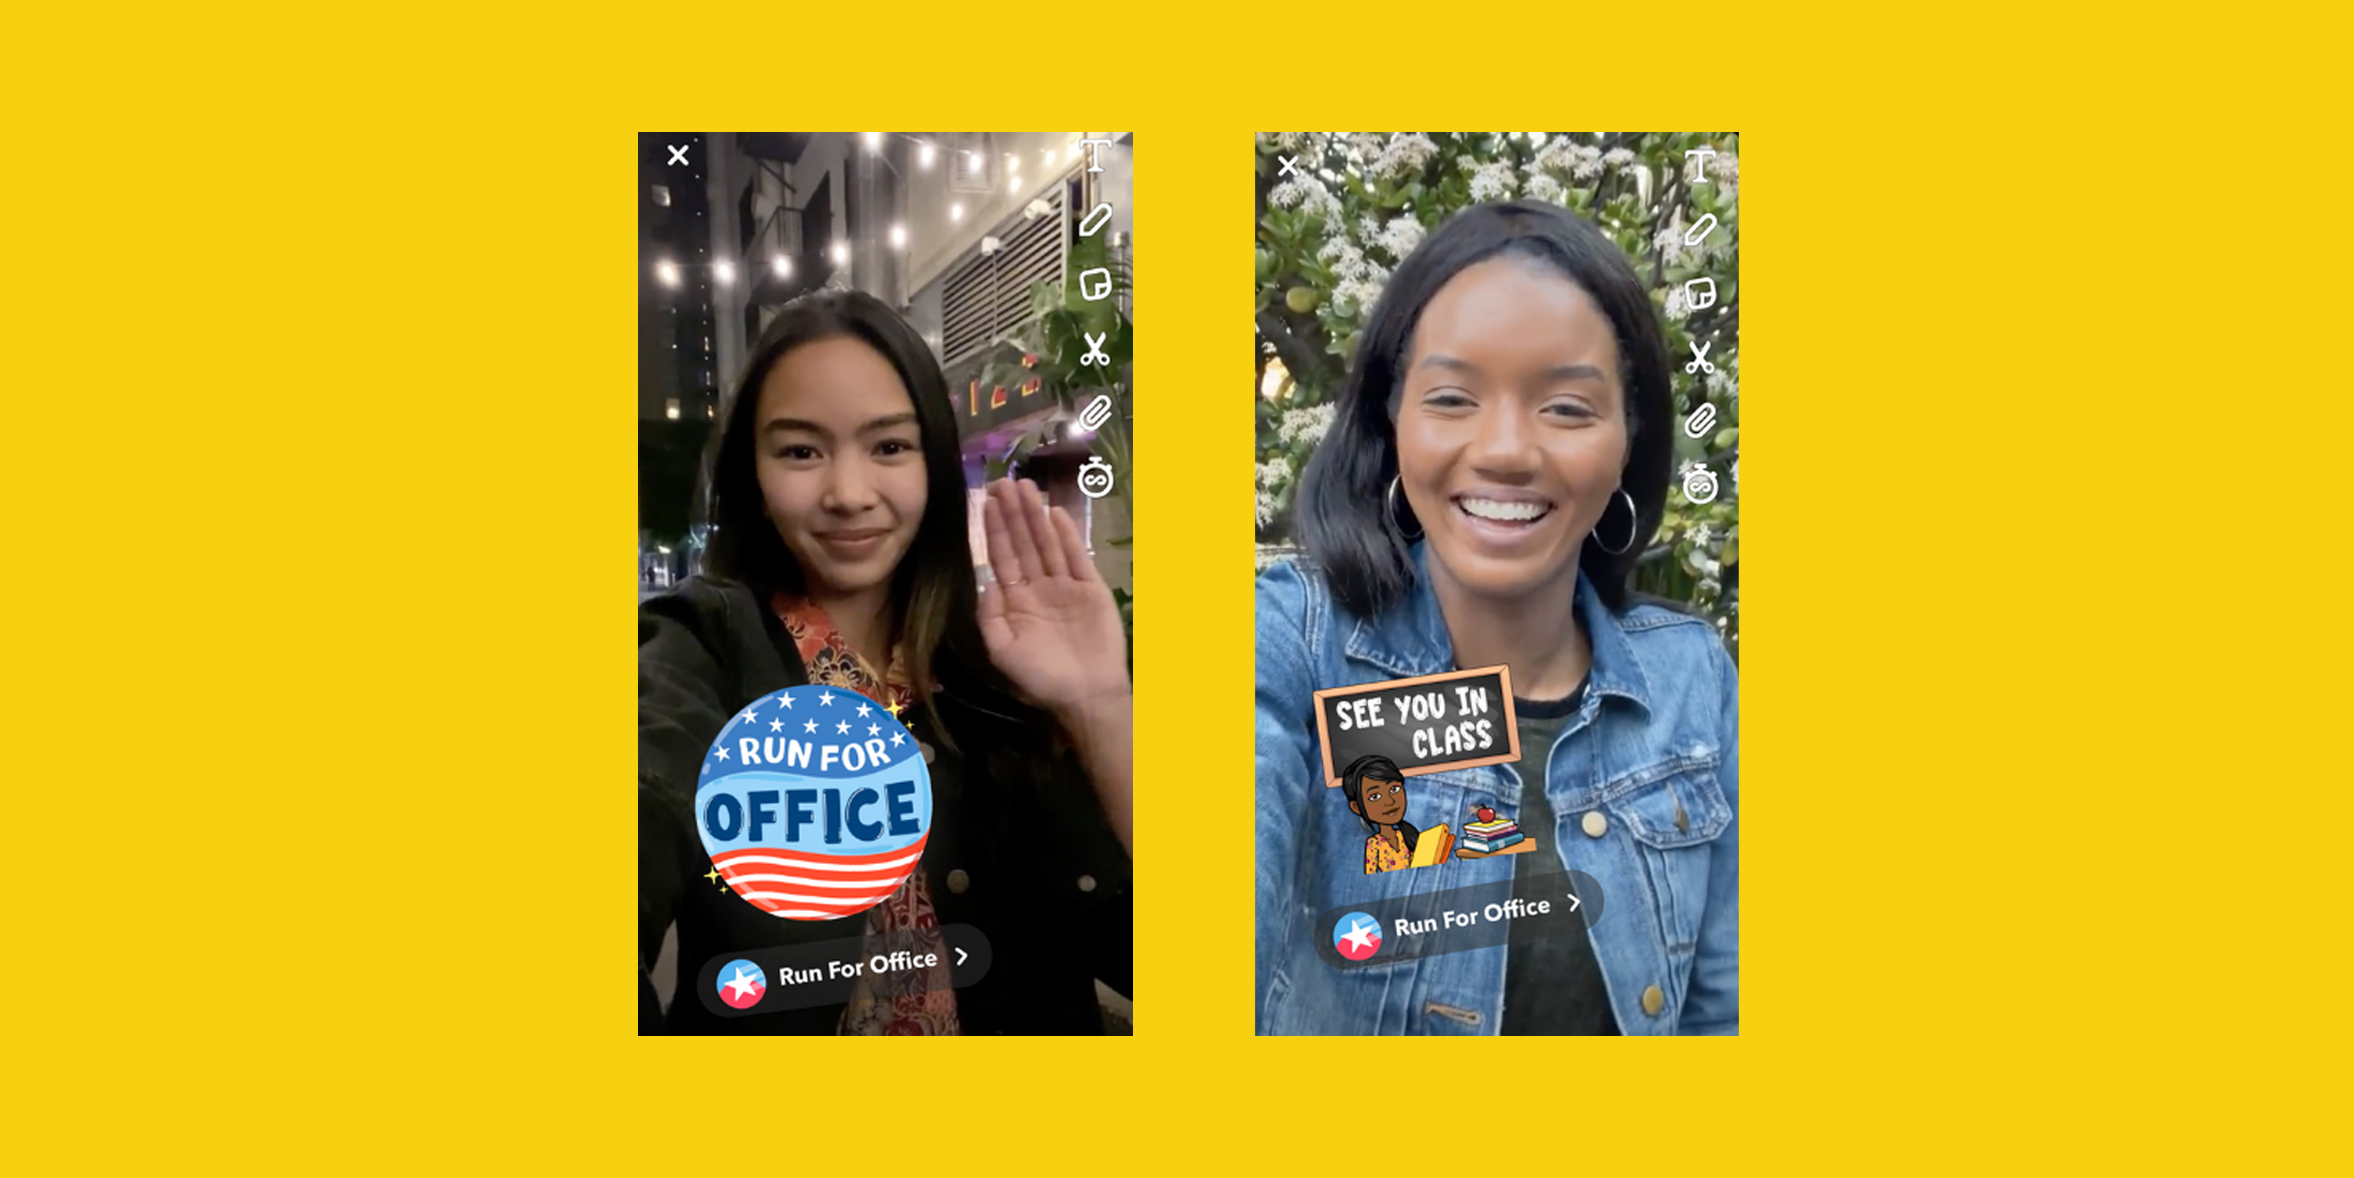 Snapchat introduces tool to help young people run for office